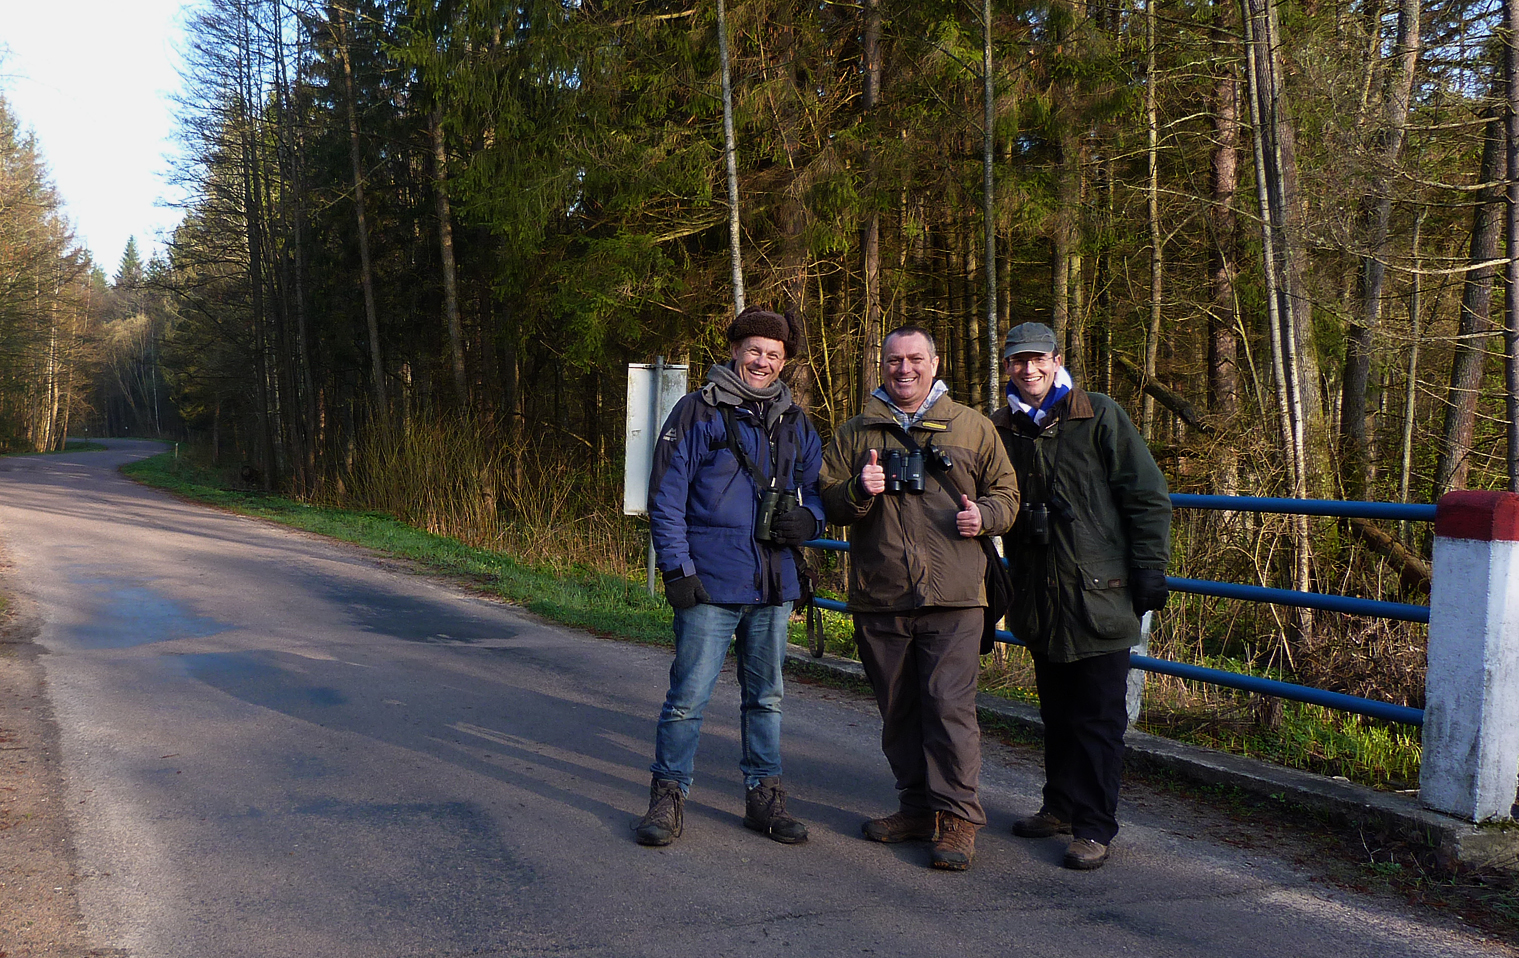 BUBO lads thrilled with the White-backed Woodpecker, the first tick of the trip!